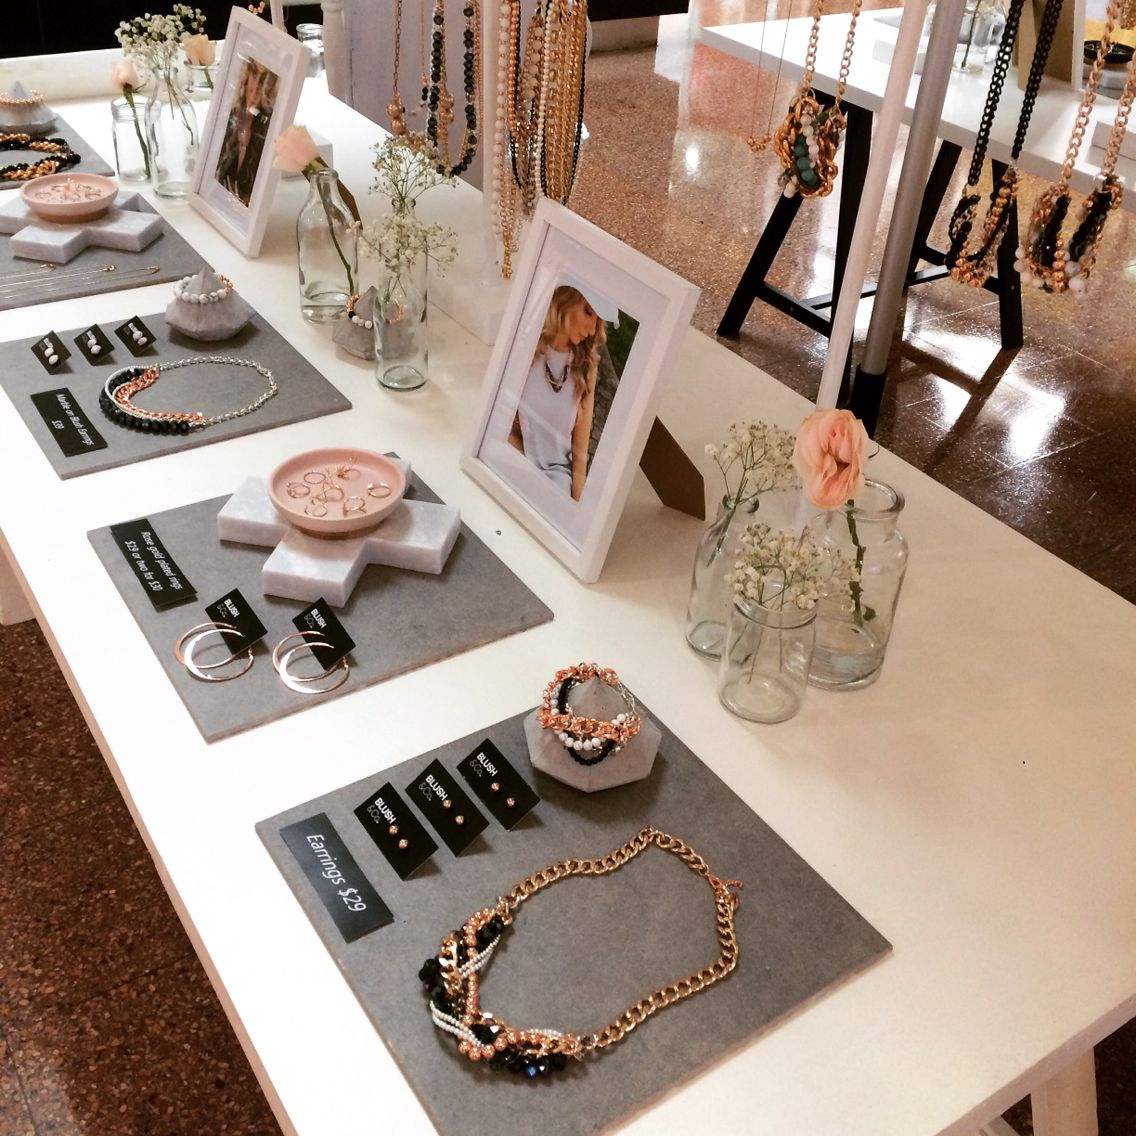 Visual merchandising Pop up space   Jewelry shop display, Jewellery  display, Jewelry booth